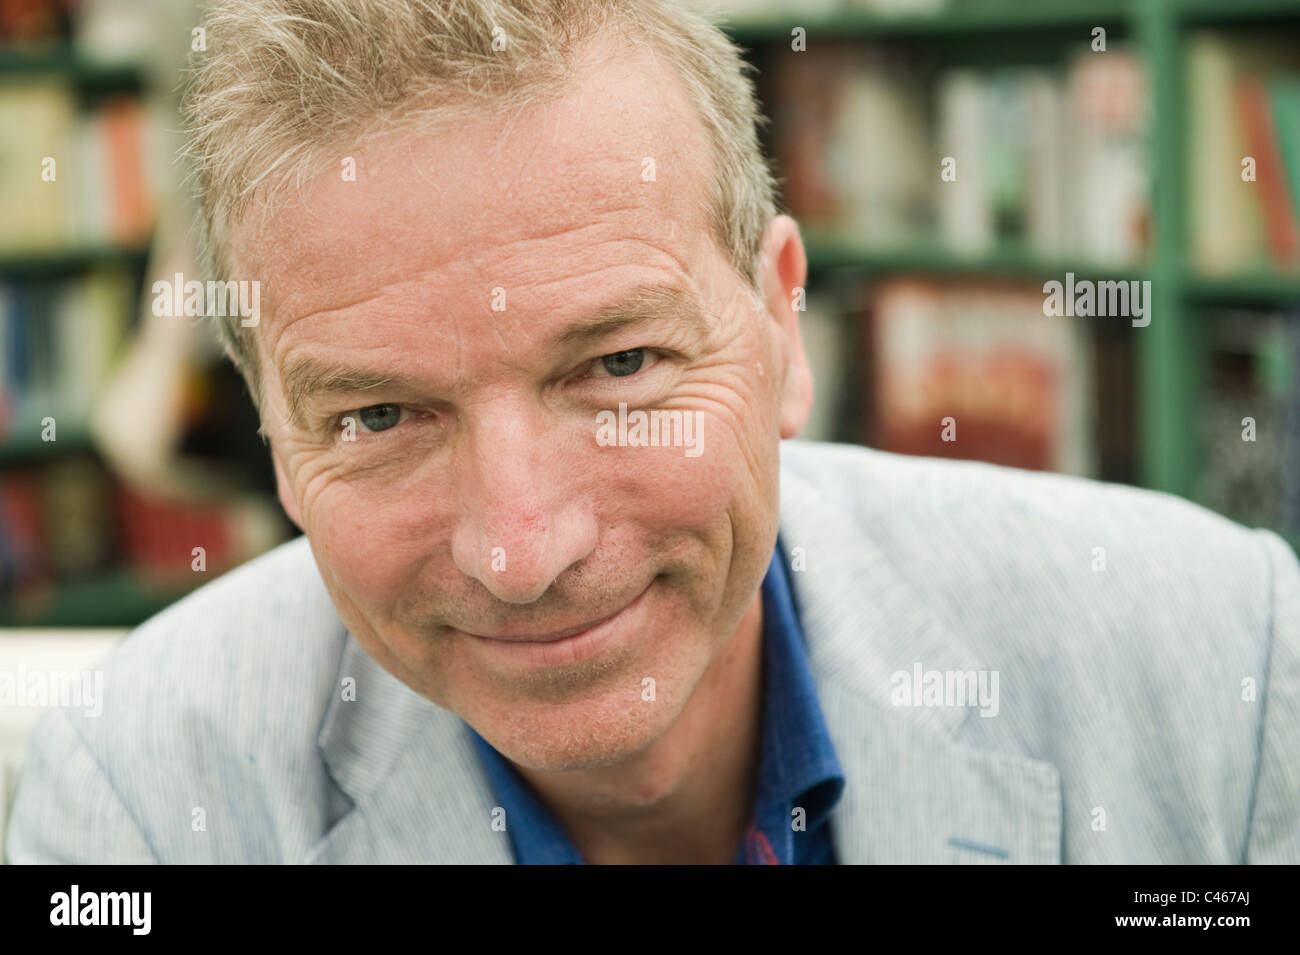 Clive Aslett journalist writer and former editor of Country Life pictured at Hay Festival 2011 - Stock Image